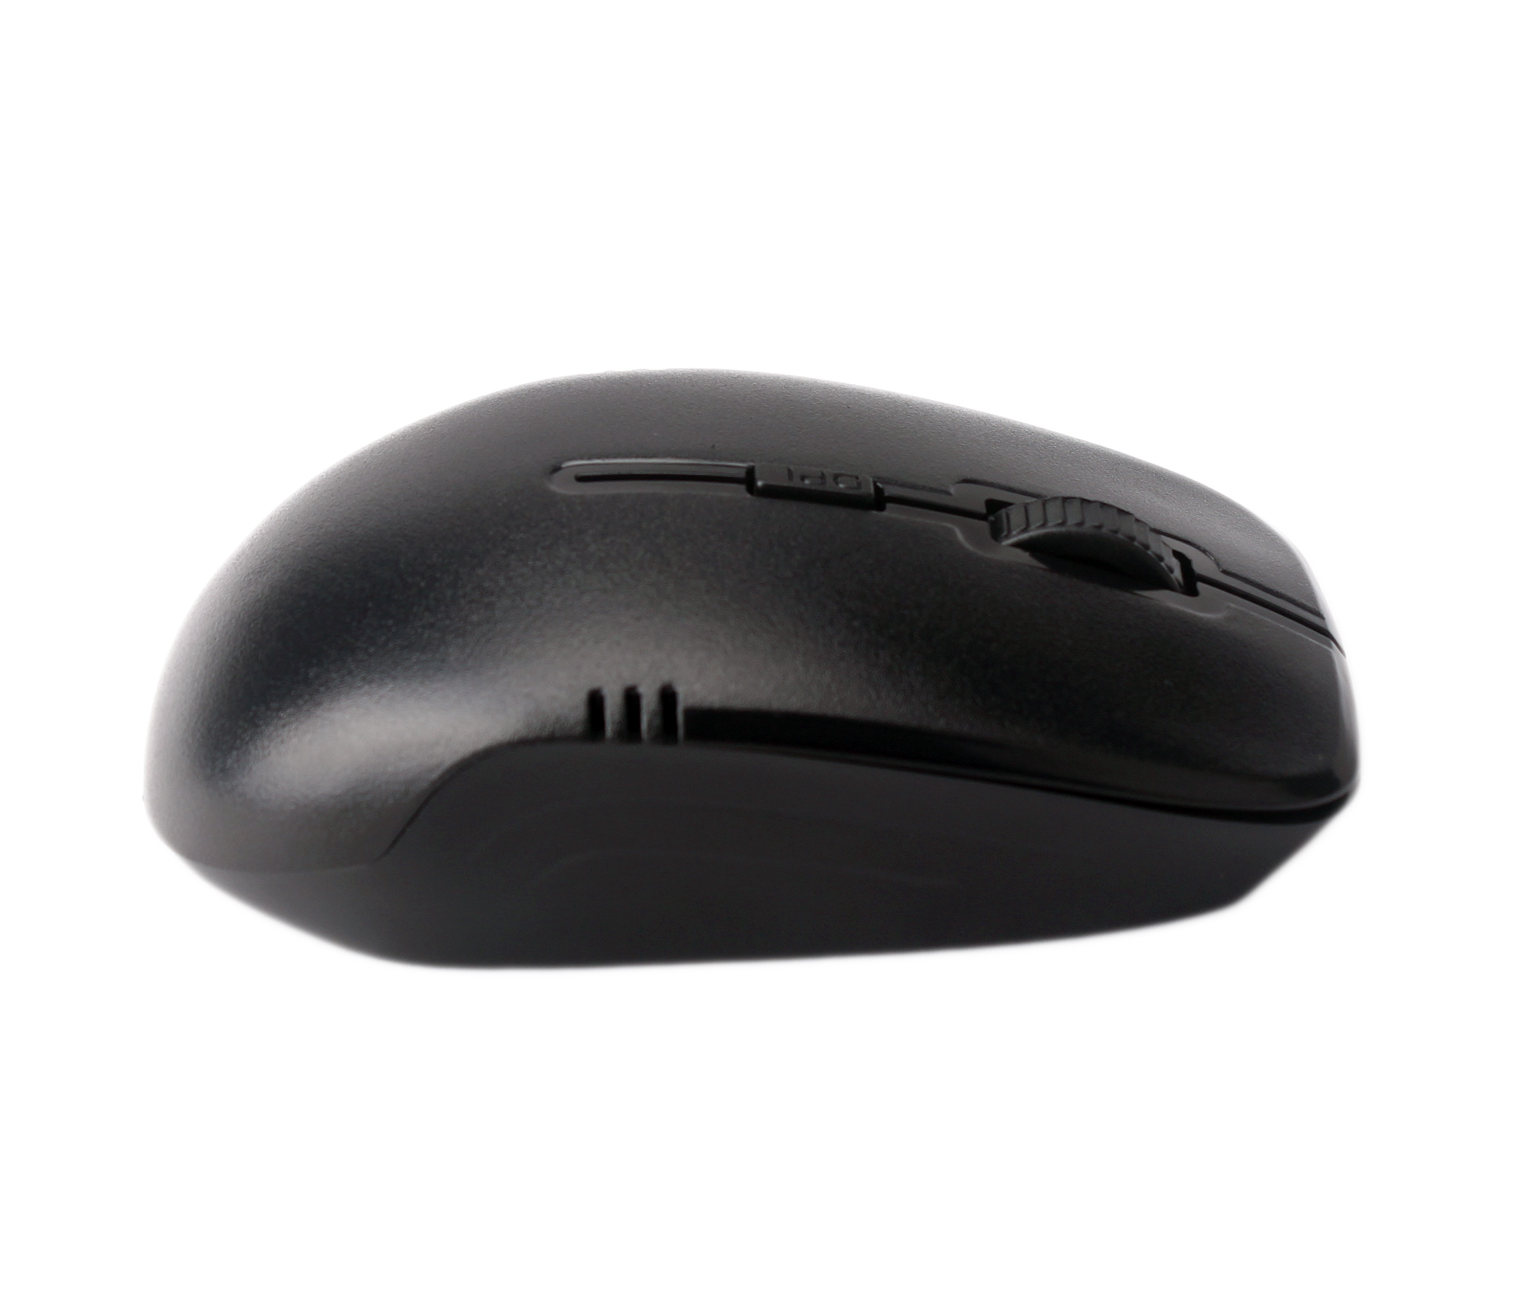 Cheap Wireless Mouse 1.15USD For Promotion,800/1200/1600 DPI